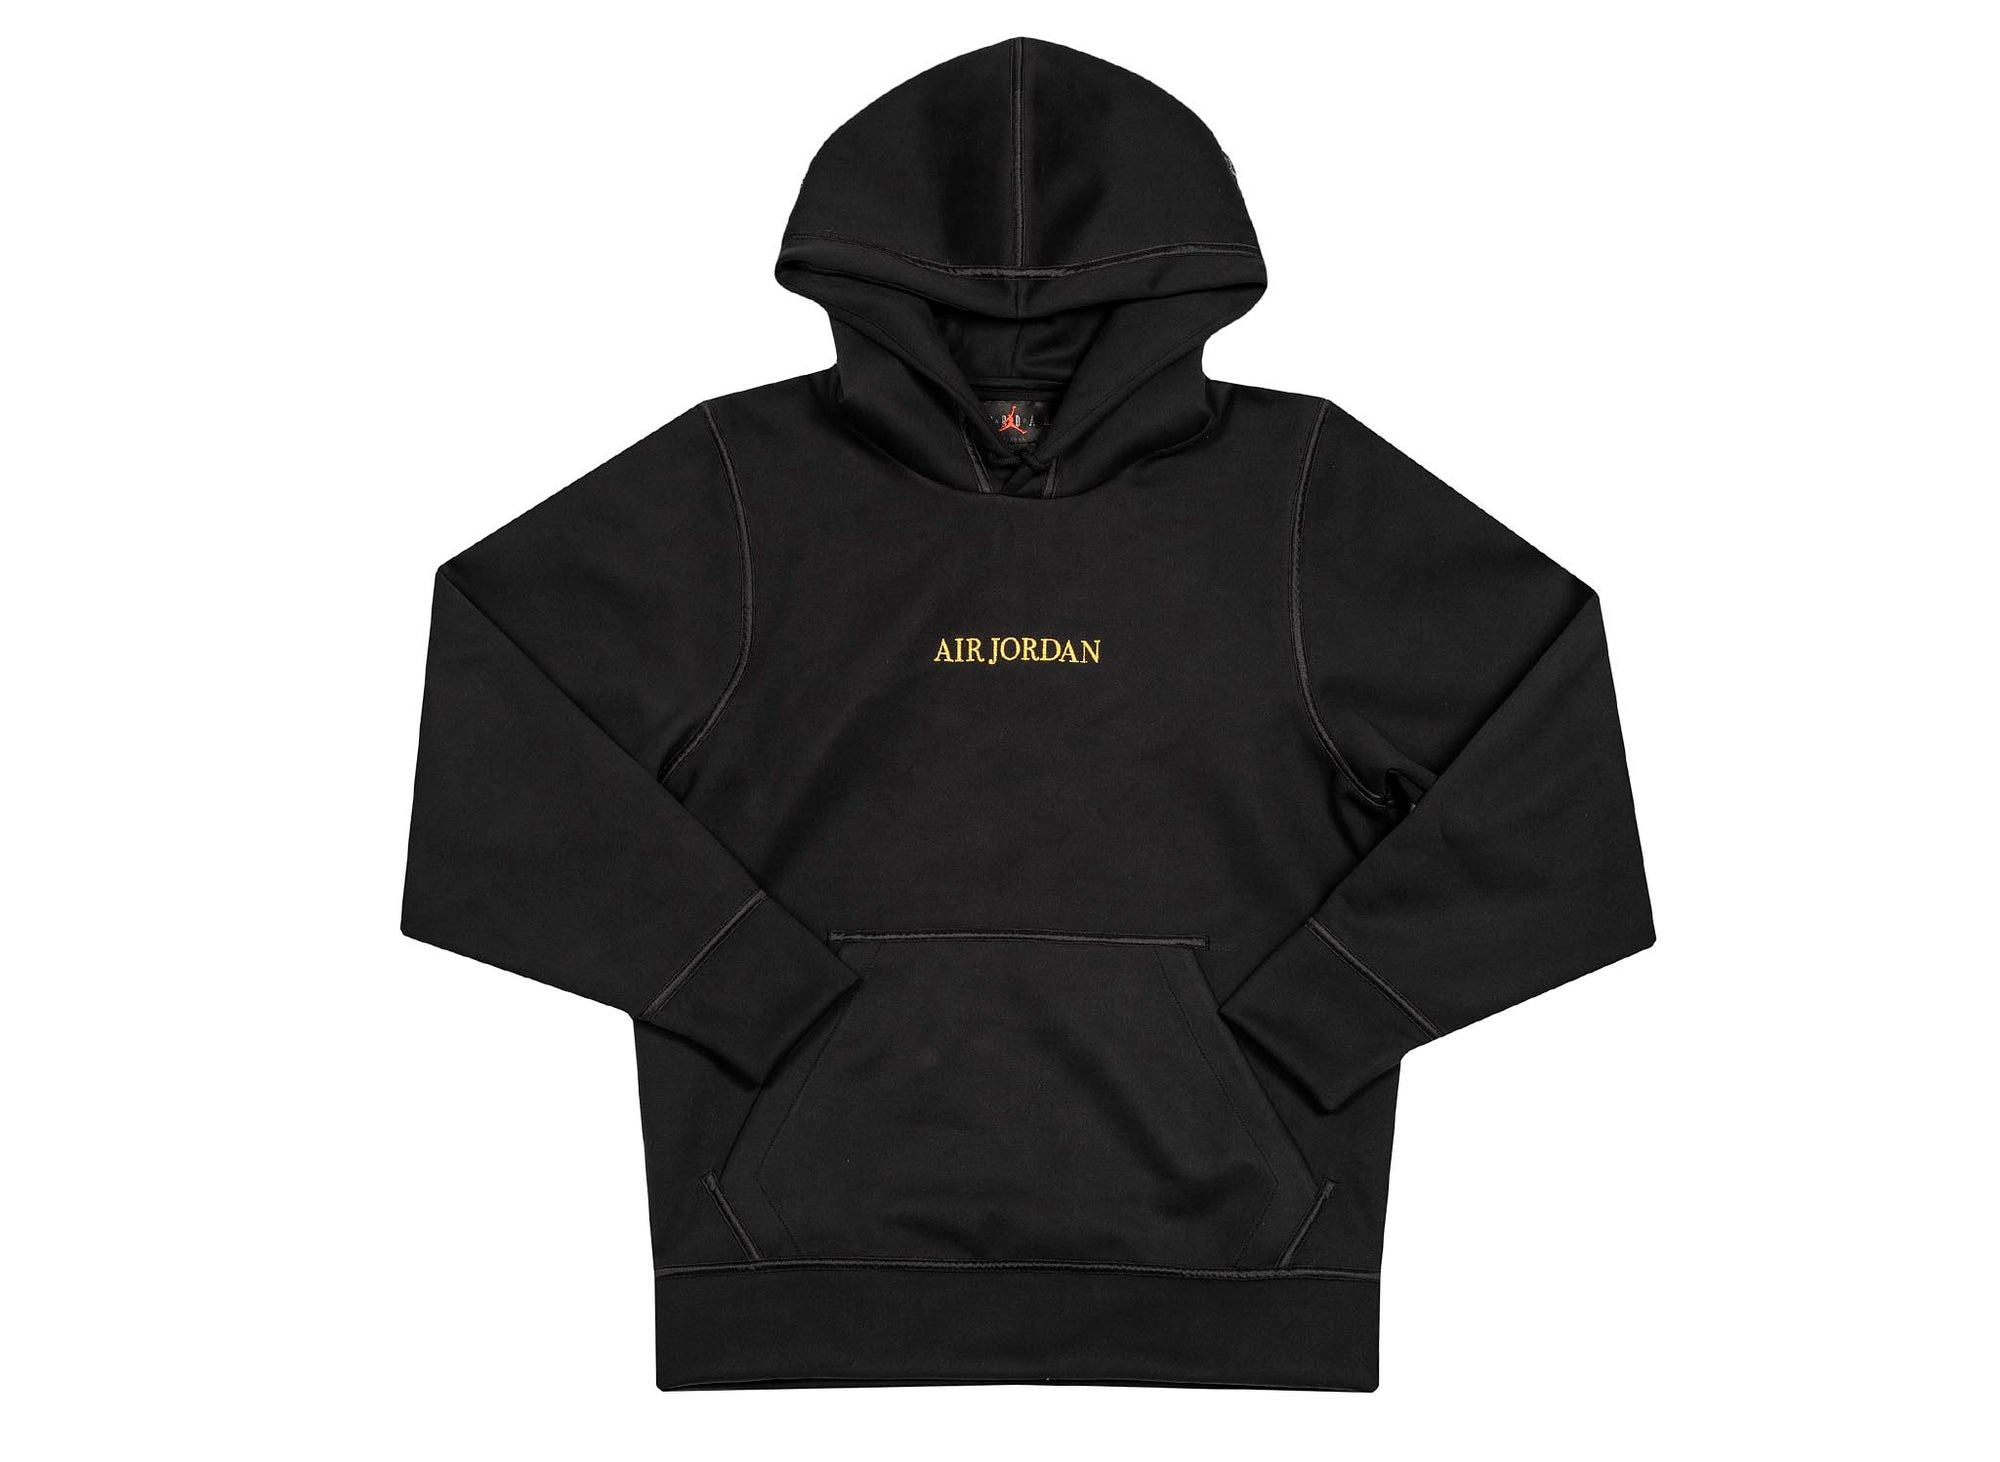 Air Jordan MJ Remastered Pullover Hoodie in Black